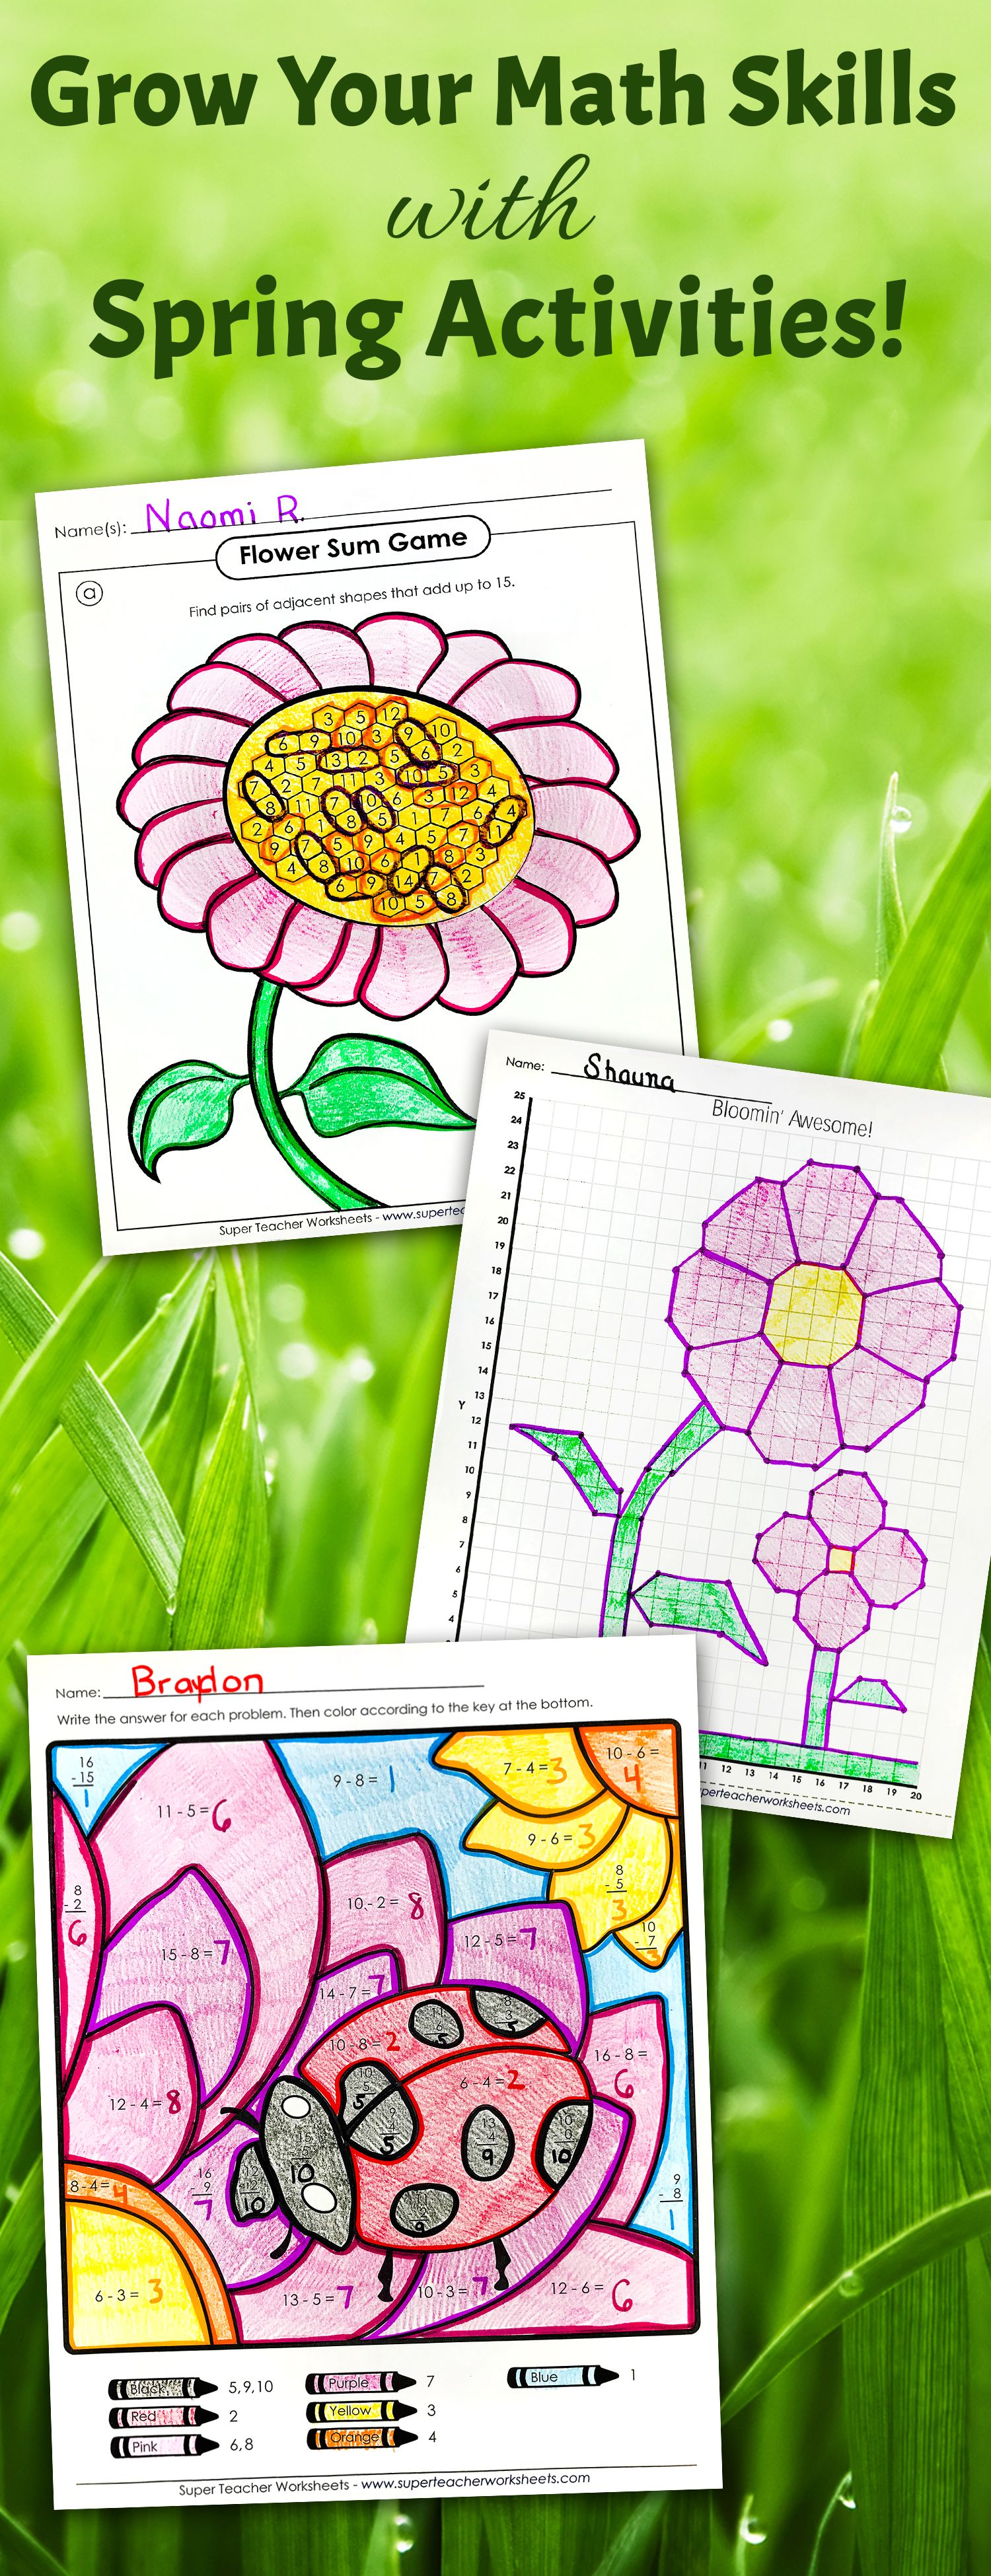 Check Out The Superteacherworksheets Spring Page For